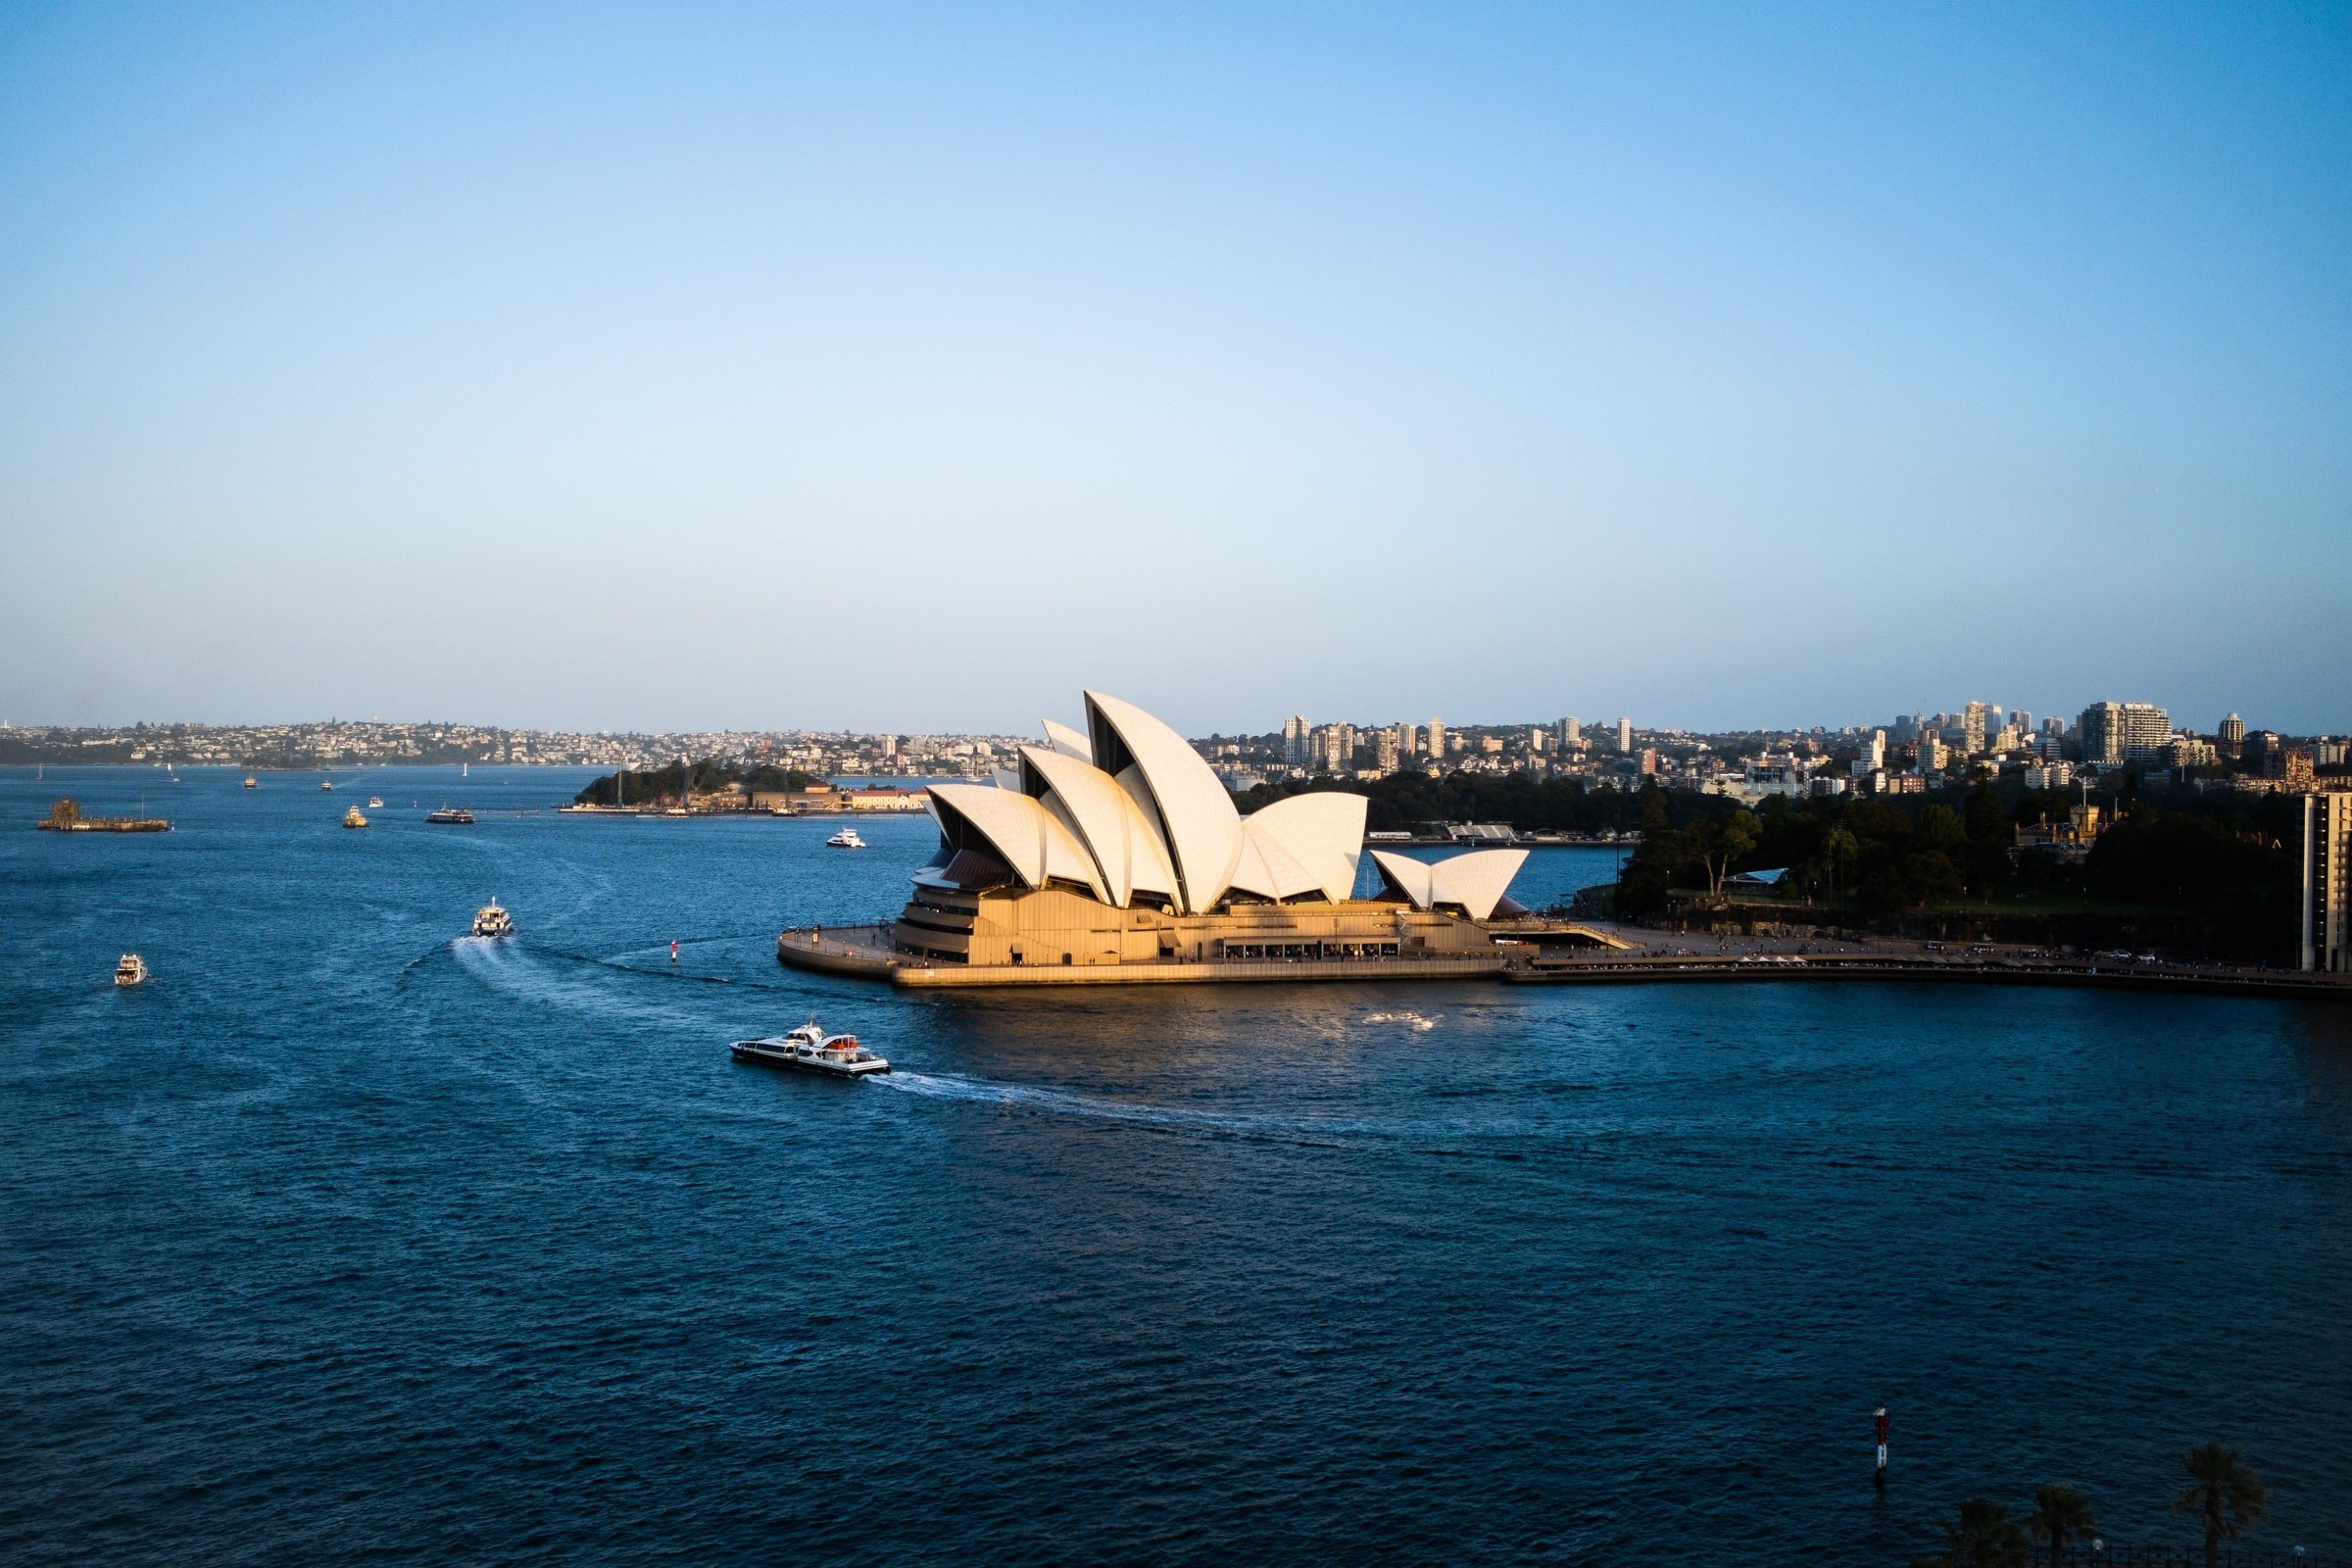 Australa to reopen borders by Christmas Sydney Opera House Travel News Wrap